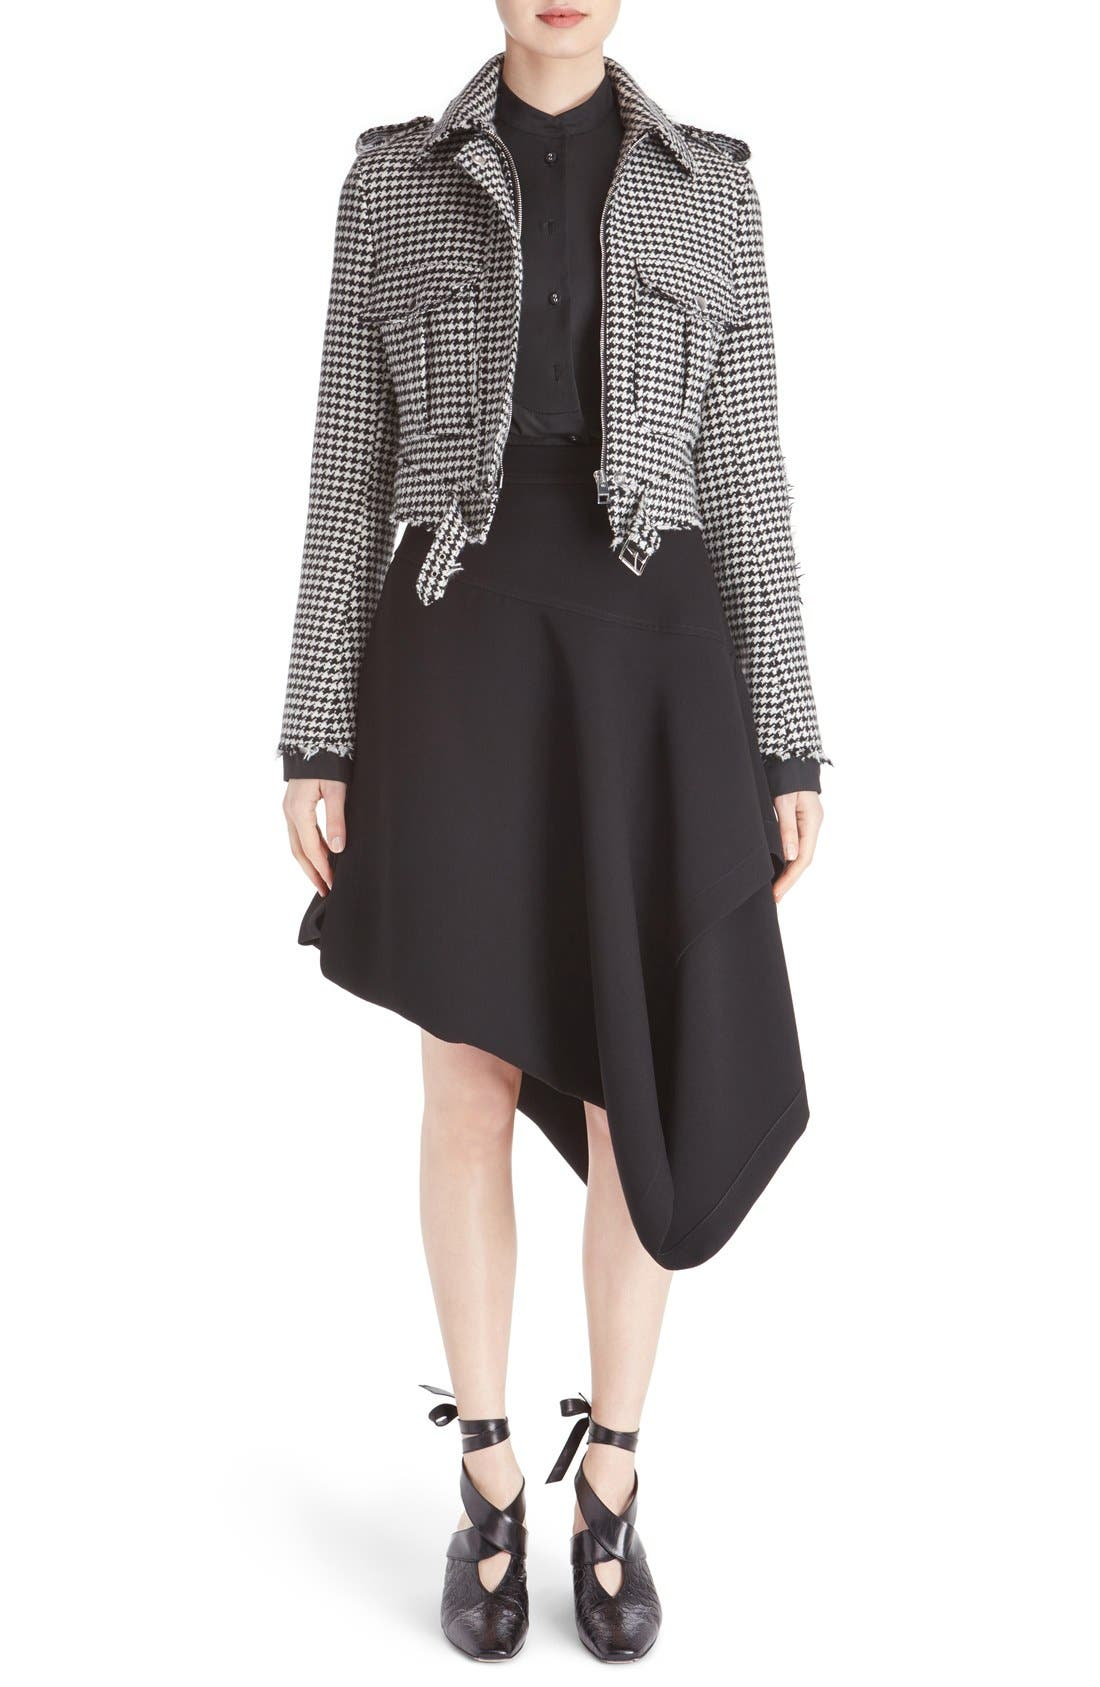 J.W.ANDERSON Houndstooth Wool Blend Jacket